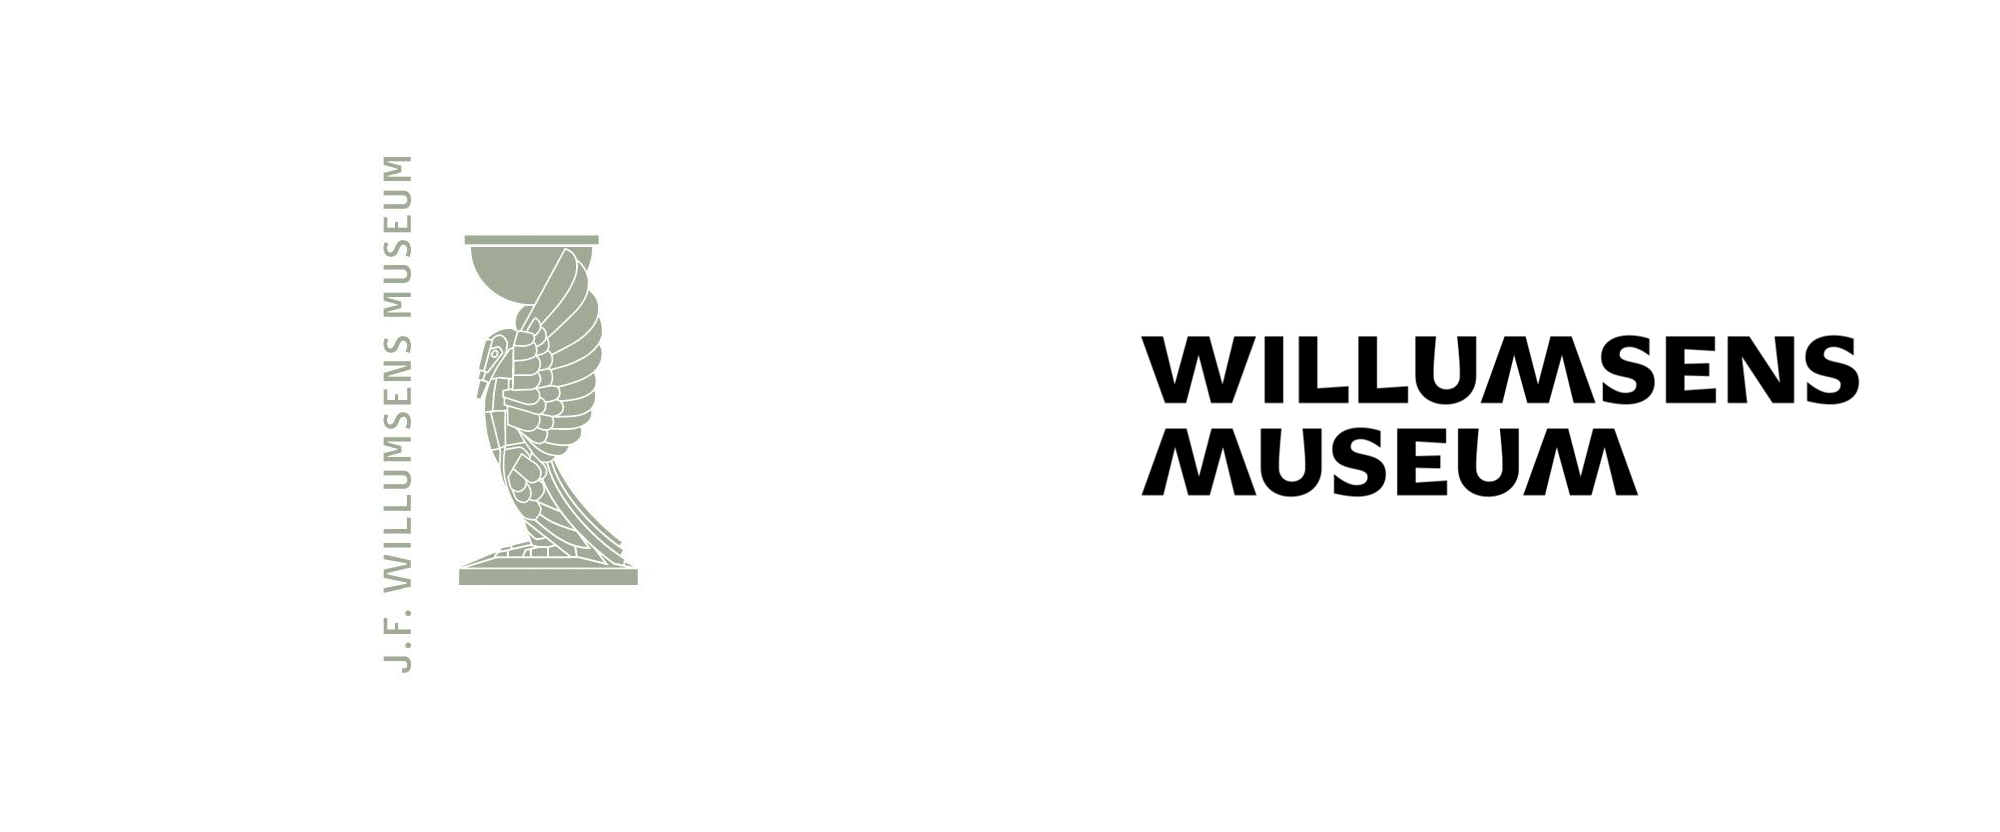 New Logo and Identity for Willumsens Museum by IDna Group